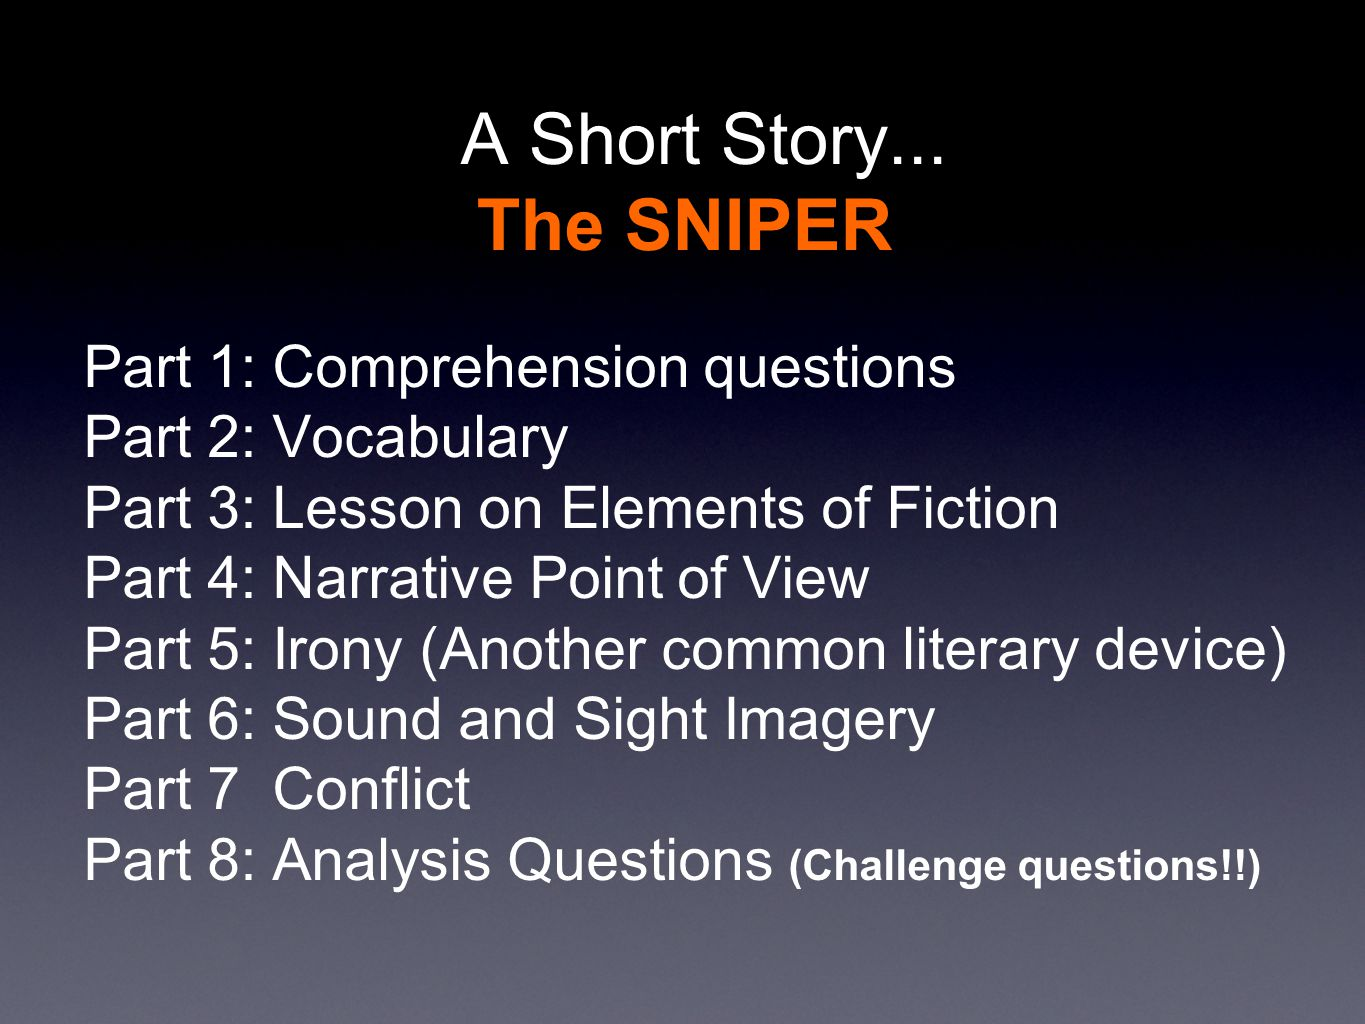 Argumentative Essay Sample High School  A  Research Proposal Essay also How Do I Write A Thesis Statement For An Essay A Short Story The Sniper By Liam Oflaherty  Ppt Video Online  Thesis Statement For Comparison Essay